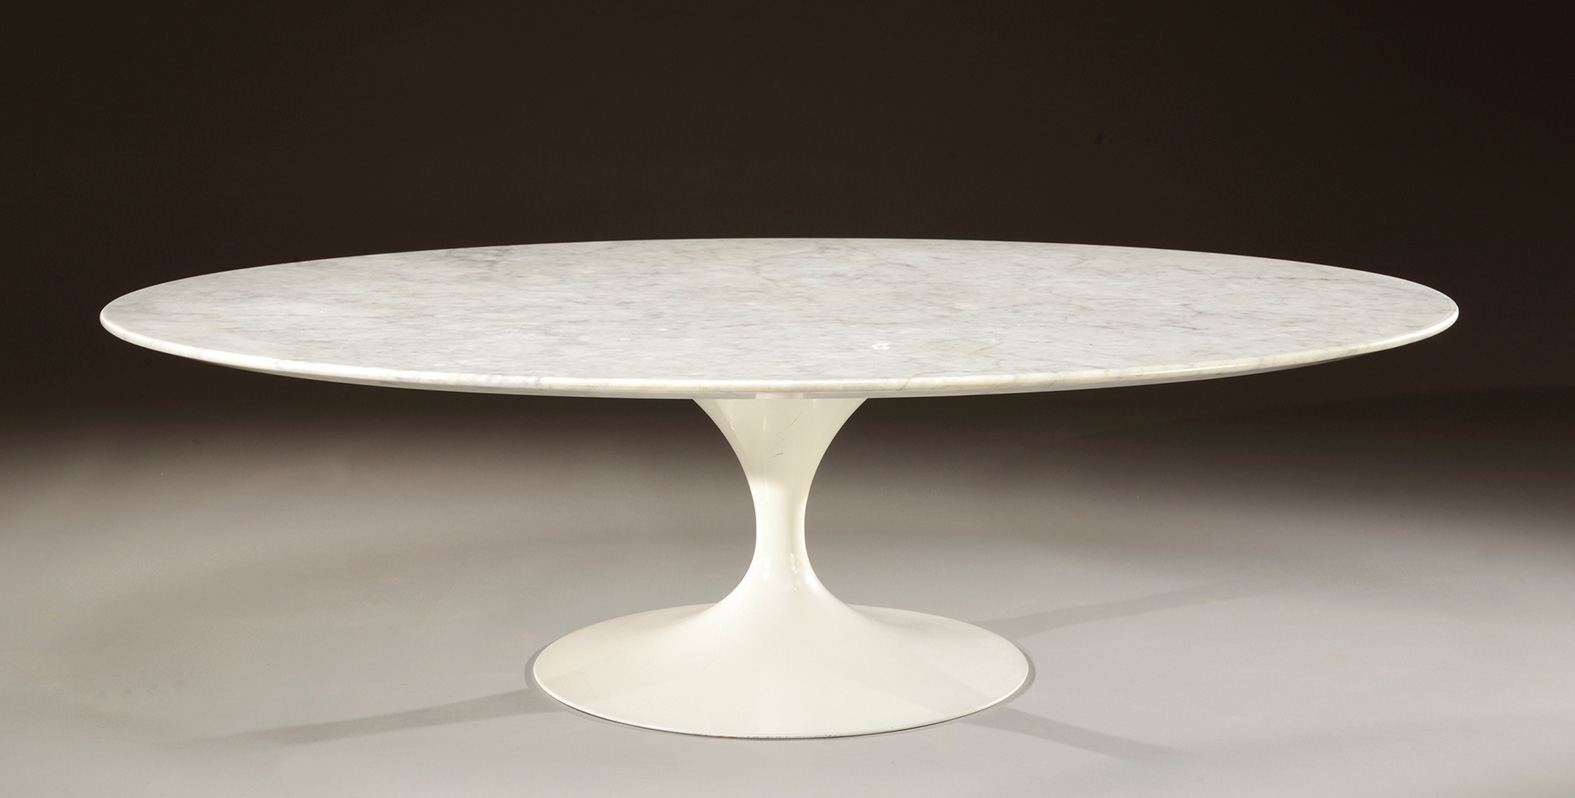 Table Ovale Saarinen Eero Saarinen 1910 1961 Table Basse à Plateau Ovale En